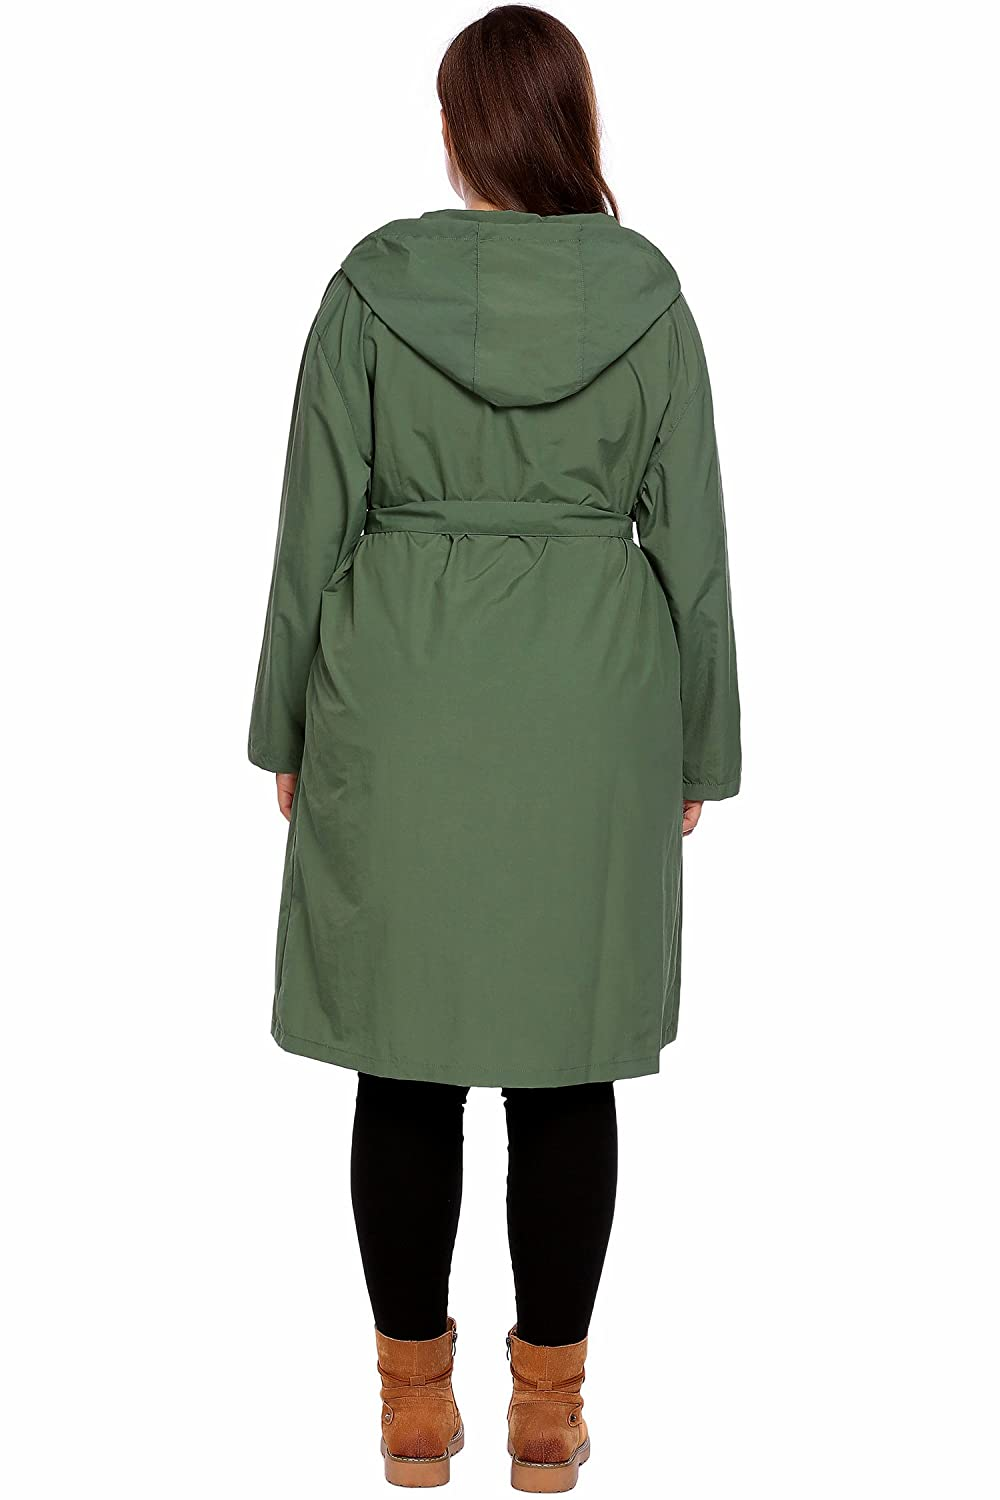 166f2564aba Amazon.com  IN VOLAND Women s Plus Size Raincoat Packable Hiking Travel  Hooded Rain Jacket Trench Windbreaker  Clothing